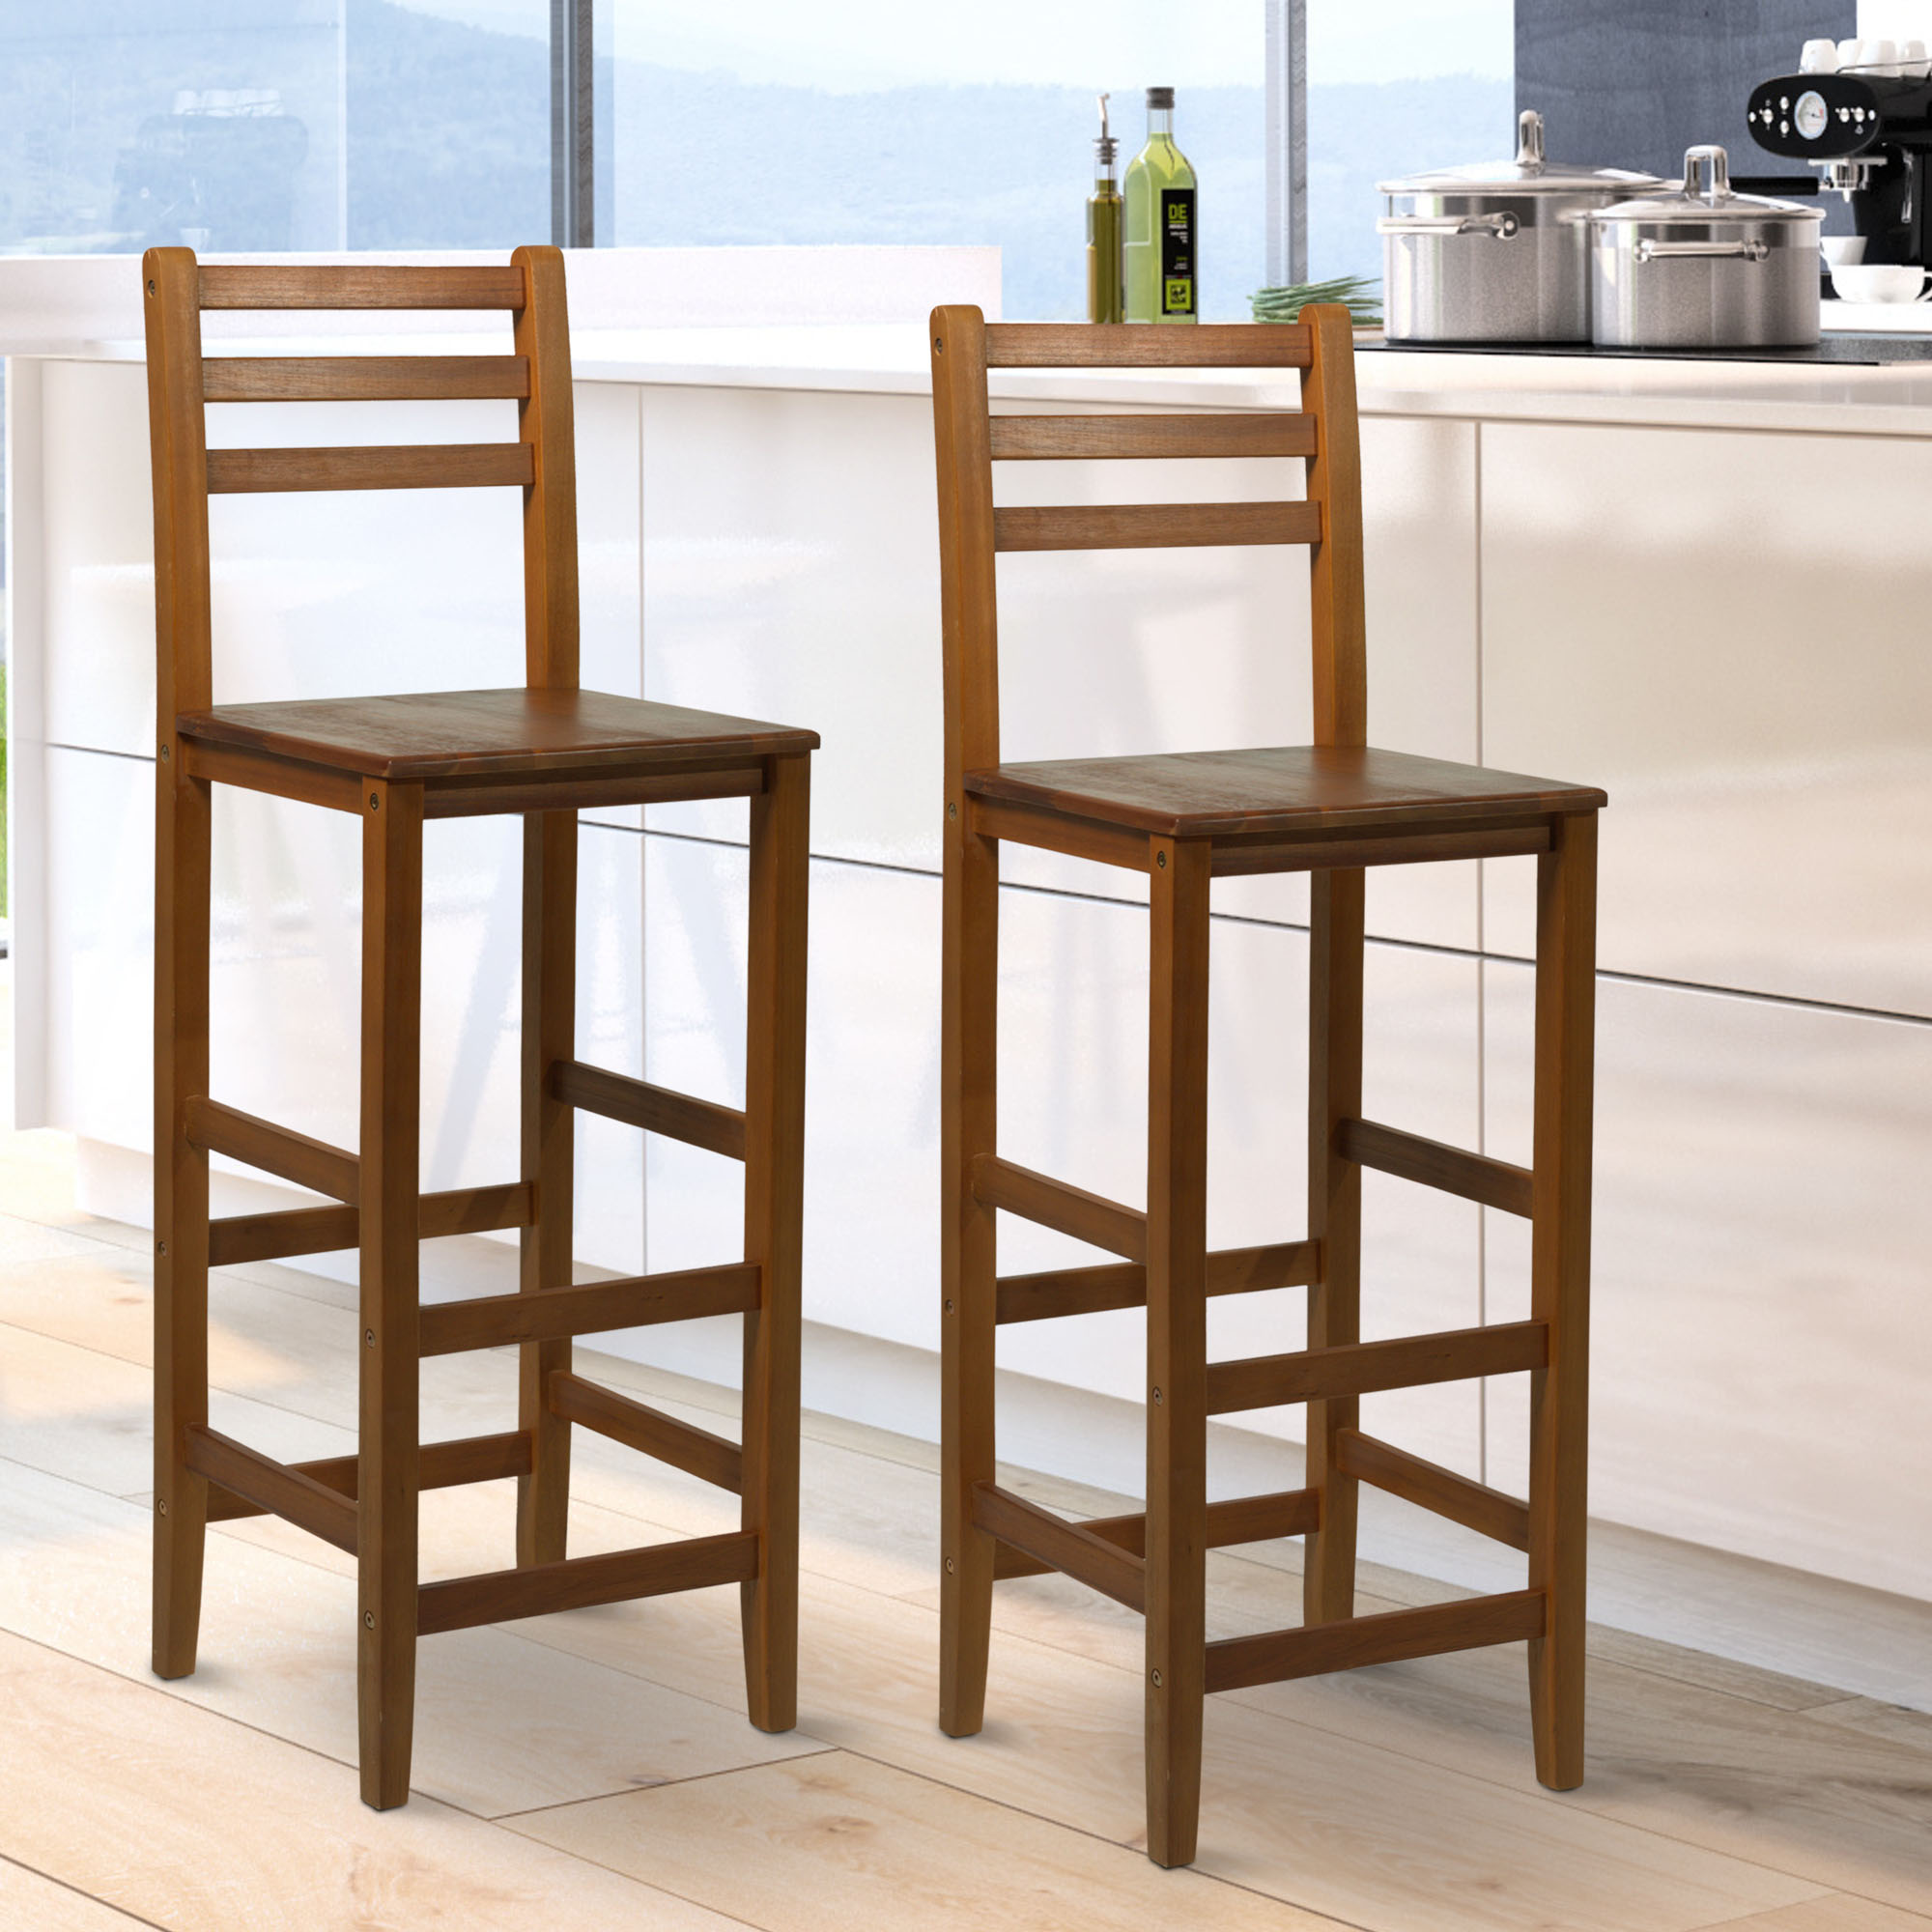 Super Details About 2Pc 43H Counter Height Chair Patio Bar Stool Armless Seat Acacia Wood Indoor Machost Co Dining Chair Design Ideas Machostcouk